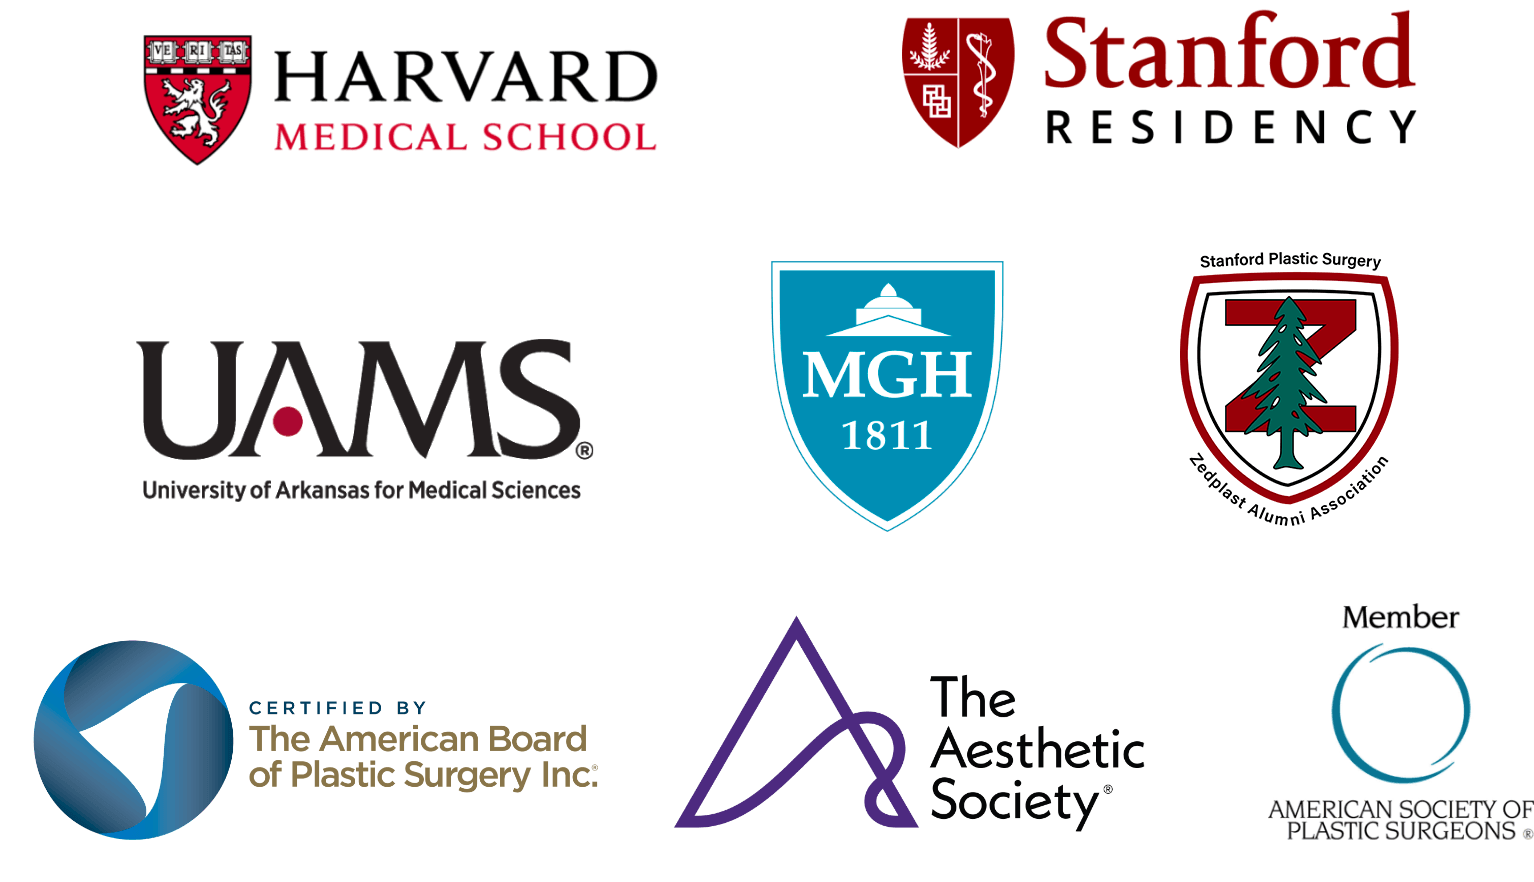 Logos for UAMS, Stanford Residency, Harvard Medical School, MGH, The American Board of Plastic Surgery, Inc., The Aesthetic Society, and the American Society of Plastic Surgeons